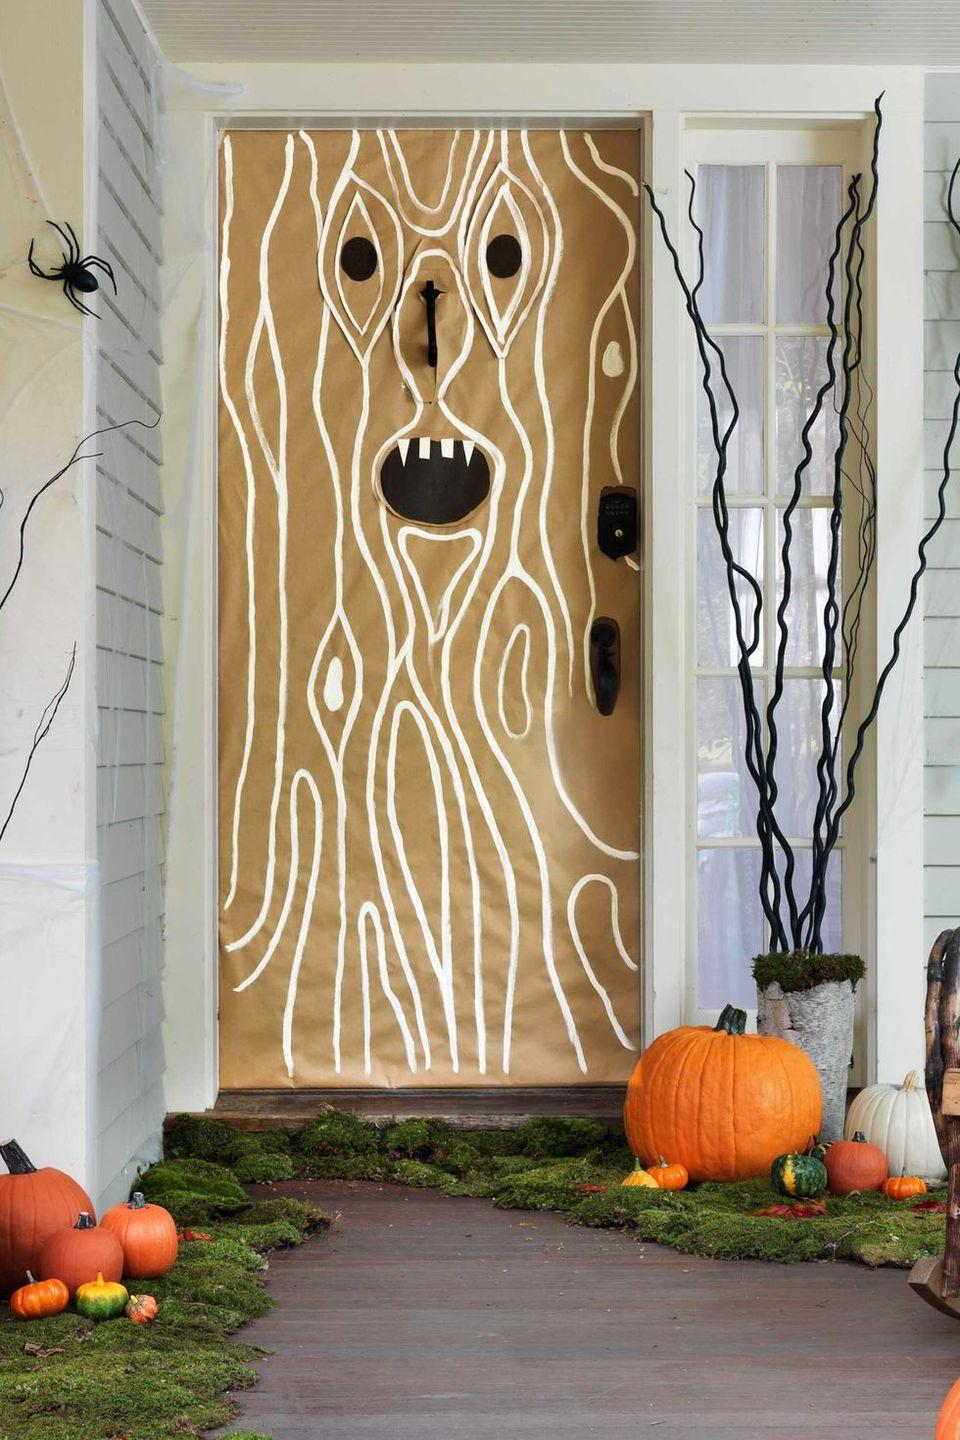 <p>Trick out your front porch with a layer of moss, spiderwebs and critters—plus a menacing tree trunk on the door. <strong><br></strong></p><p><strong>Make the Doorway:</strong> Use painter's tape to attach brown kraft paper to your door, cutting slits for the handle and knocker. Cut eyes and a mouth out of black construction paper; tape to kraft paper with double-sided tape. For the wood grain: Take white craft paint and draw curved lines first around the facial features, then vertically on the door. Place preserved green moss along the edges of your front steps or porch. Top with pumpkins.</p>